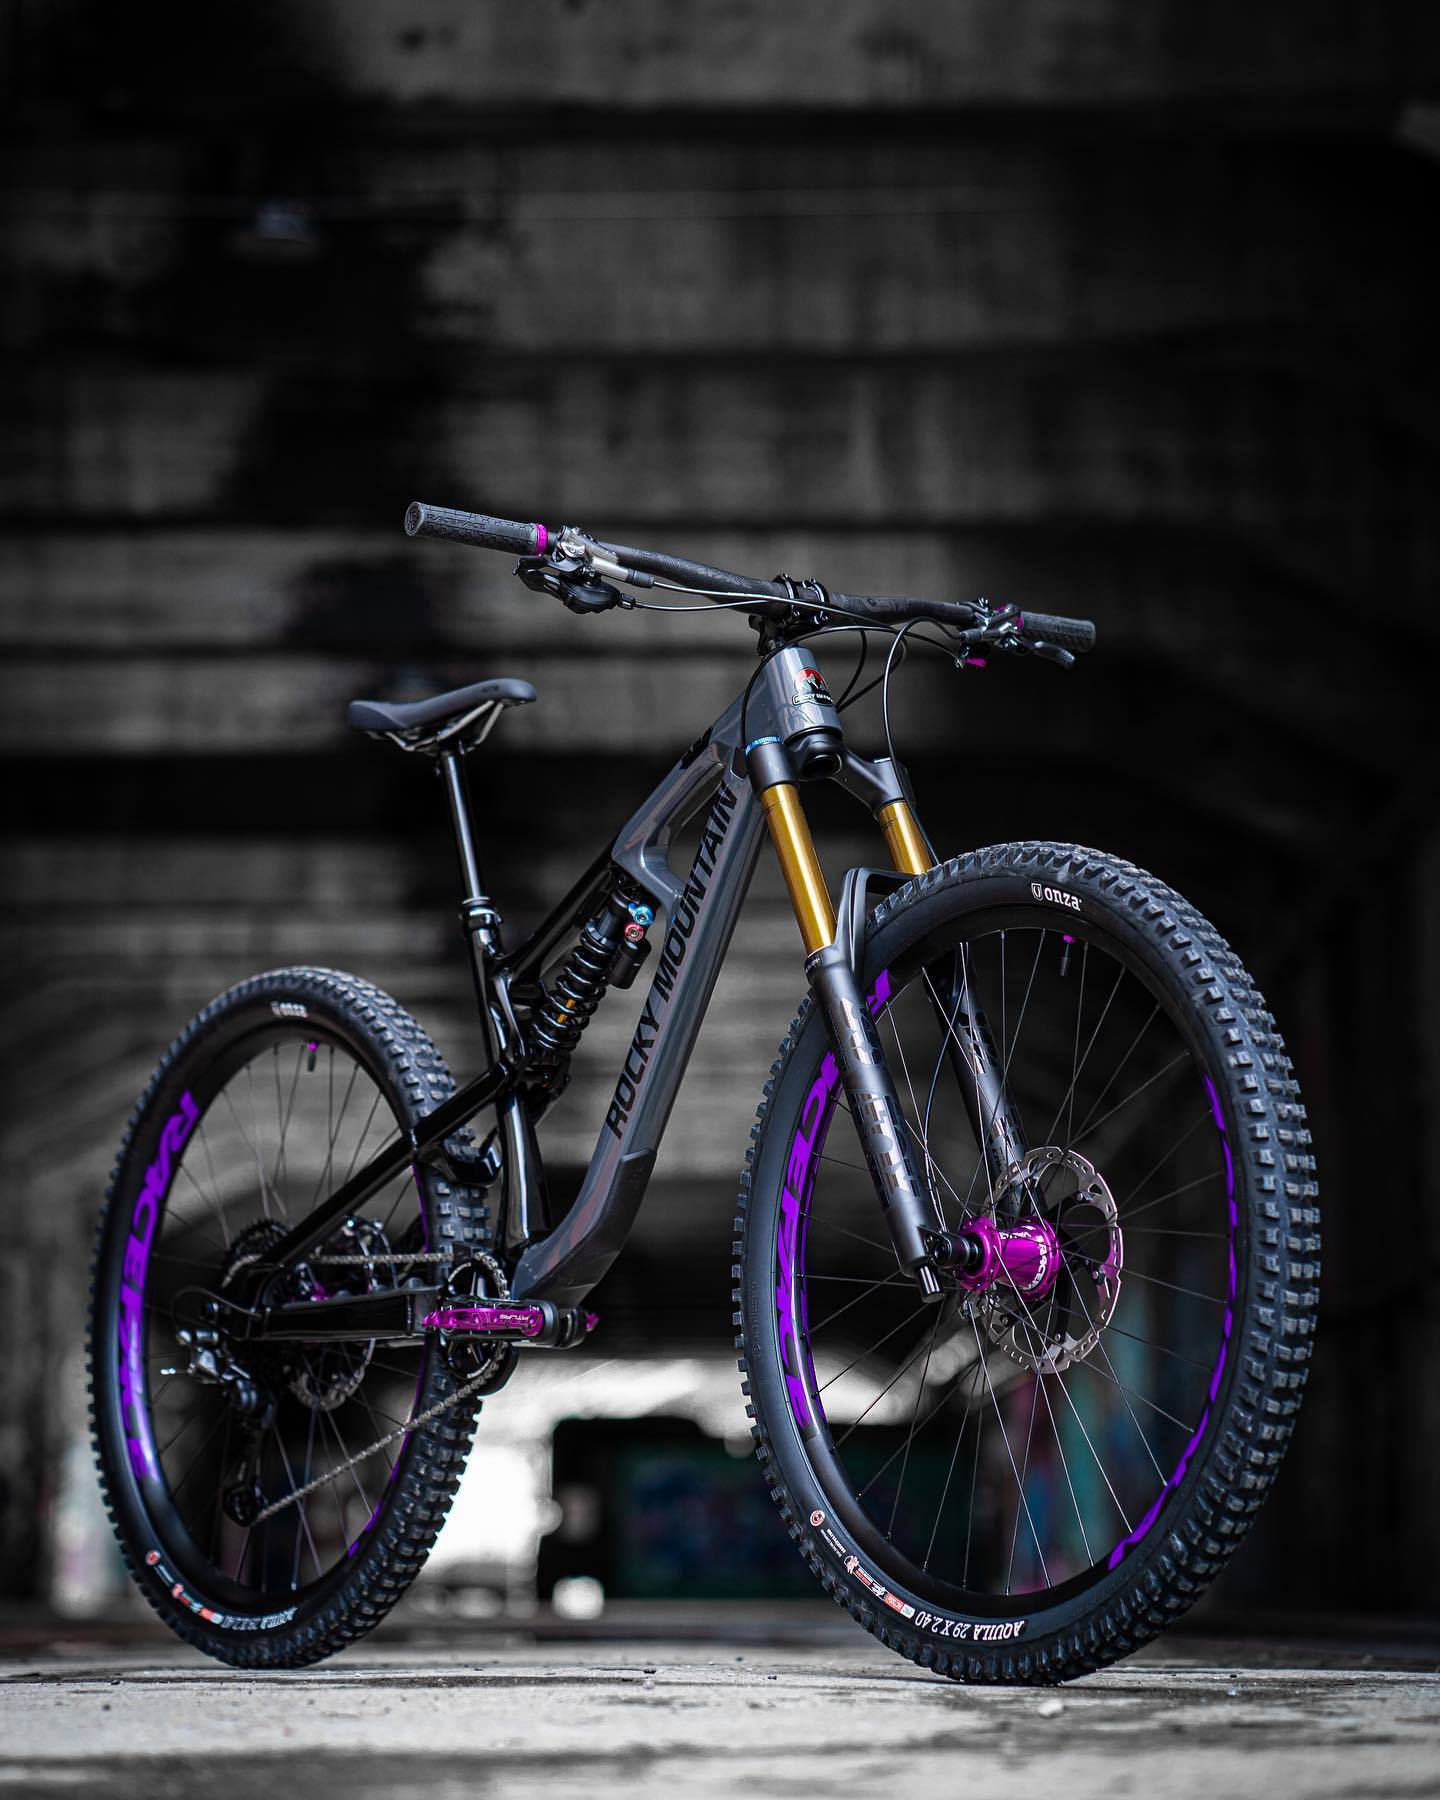 . Thanks to my fantastic sponsors for this beast/beauty! Here's the all-new Rocky Mountain Slayer! I hope you like the custom Raceface purple details as much as I do  . Huge thanks to: - @chrissports.ch - @rockymountainbicycles - @raceface - @onzatires ...you guys rock! . . . 📸: @oceanagalmarini . .